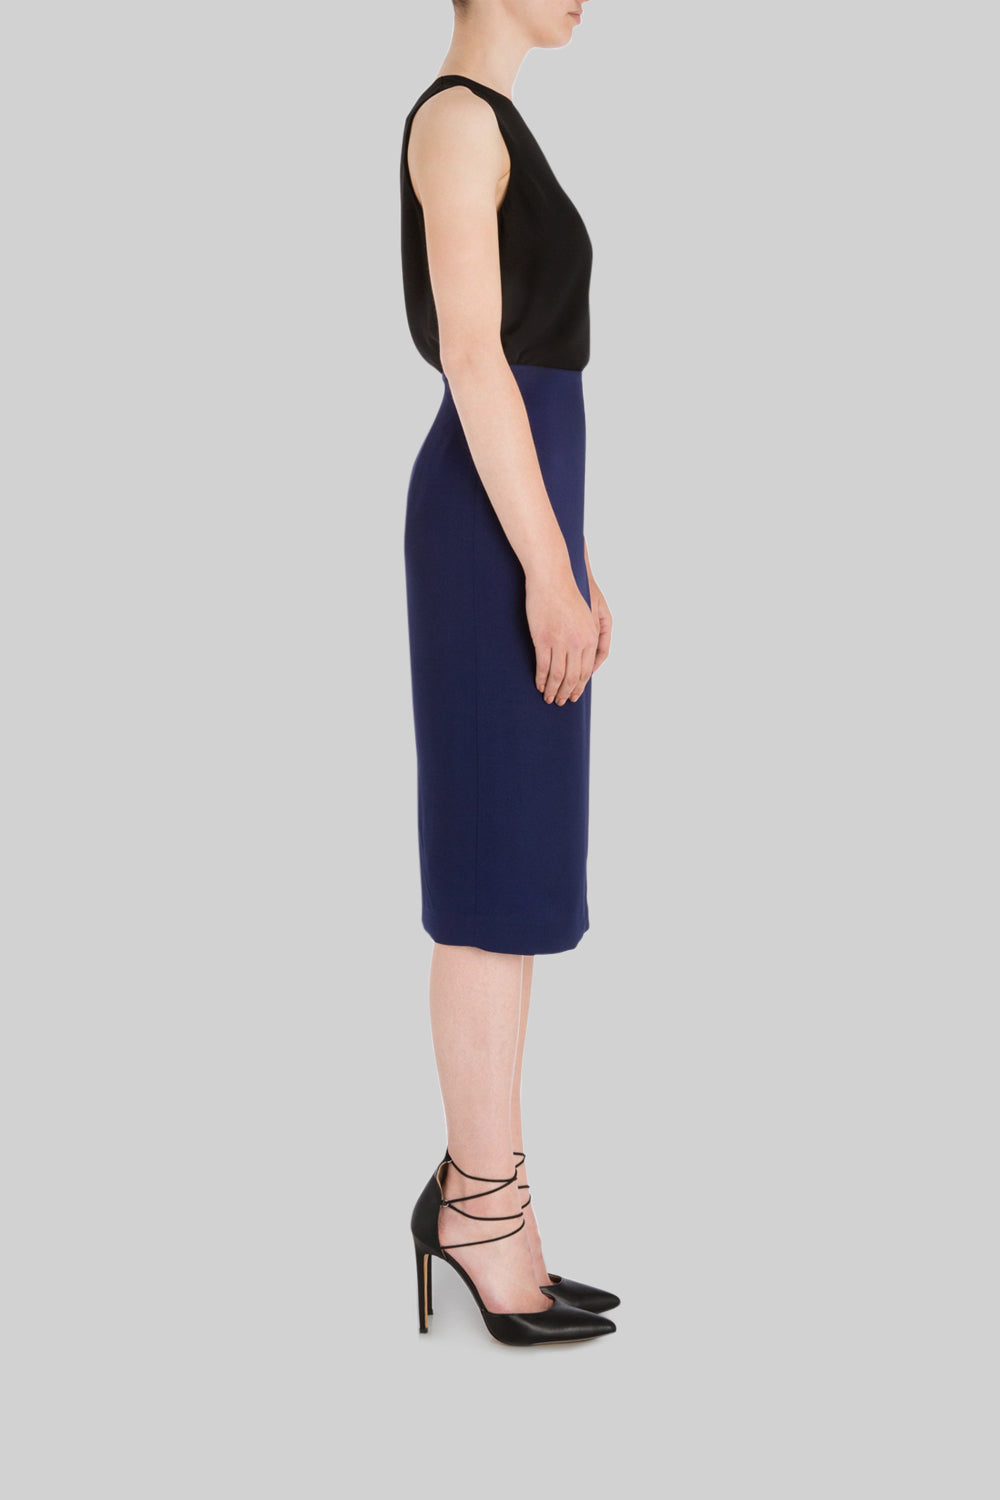 ROYAL PENCIL SHARP CLASSIC SKIRT